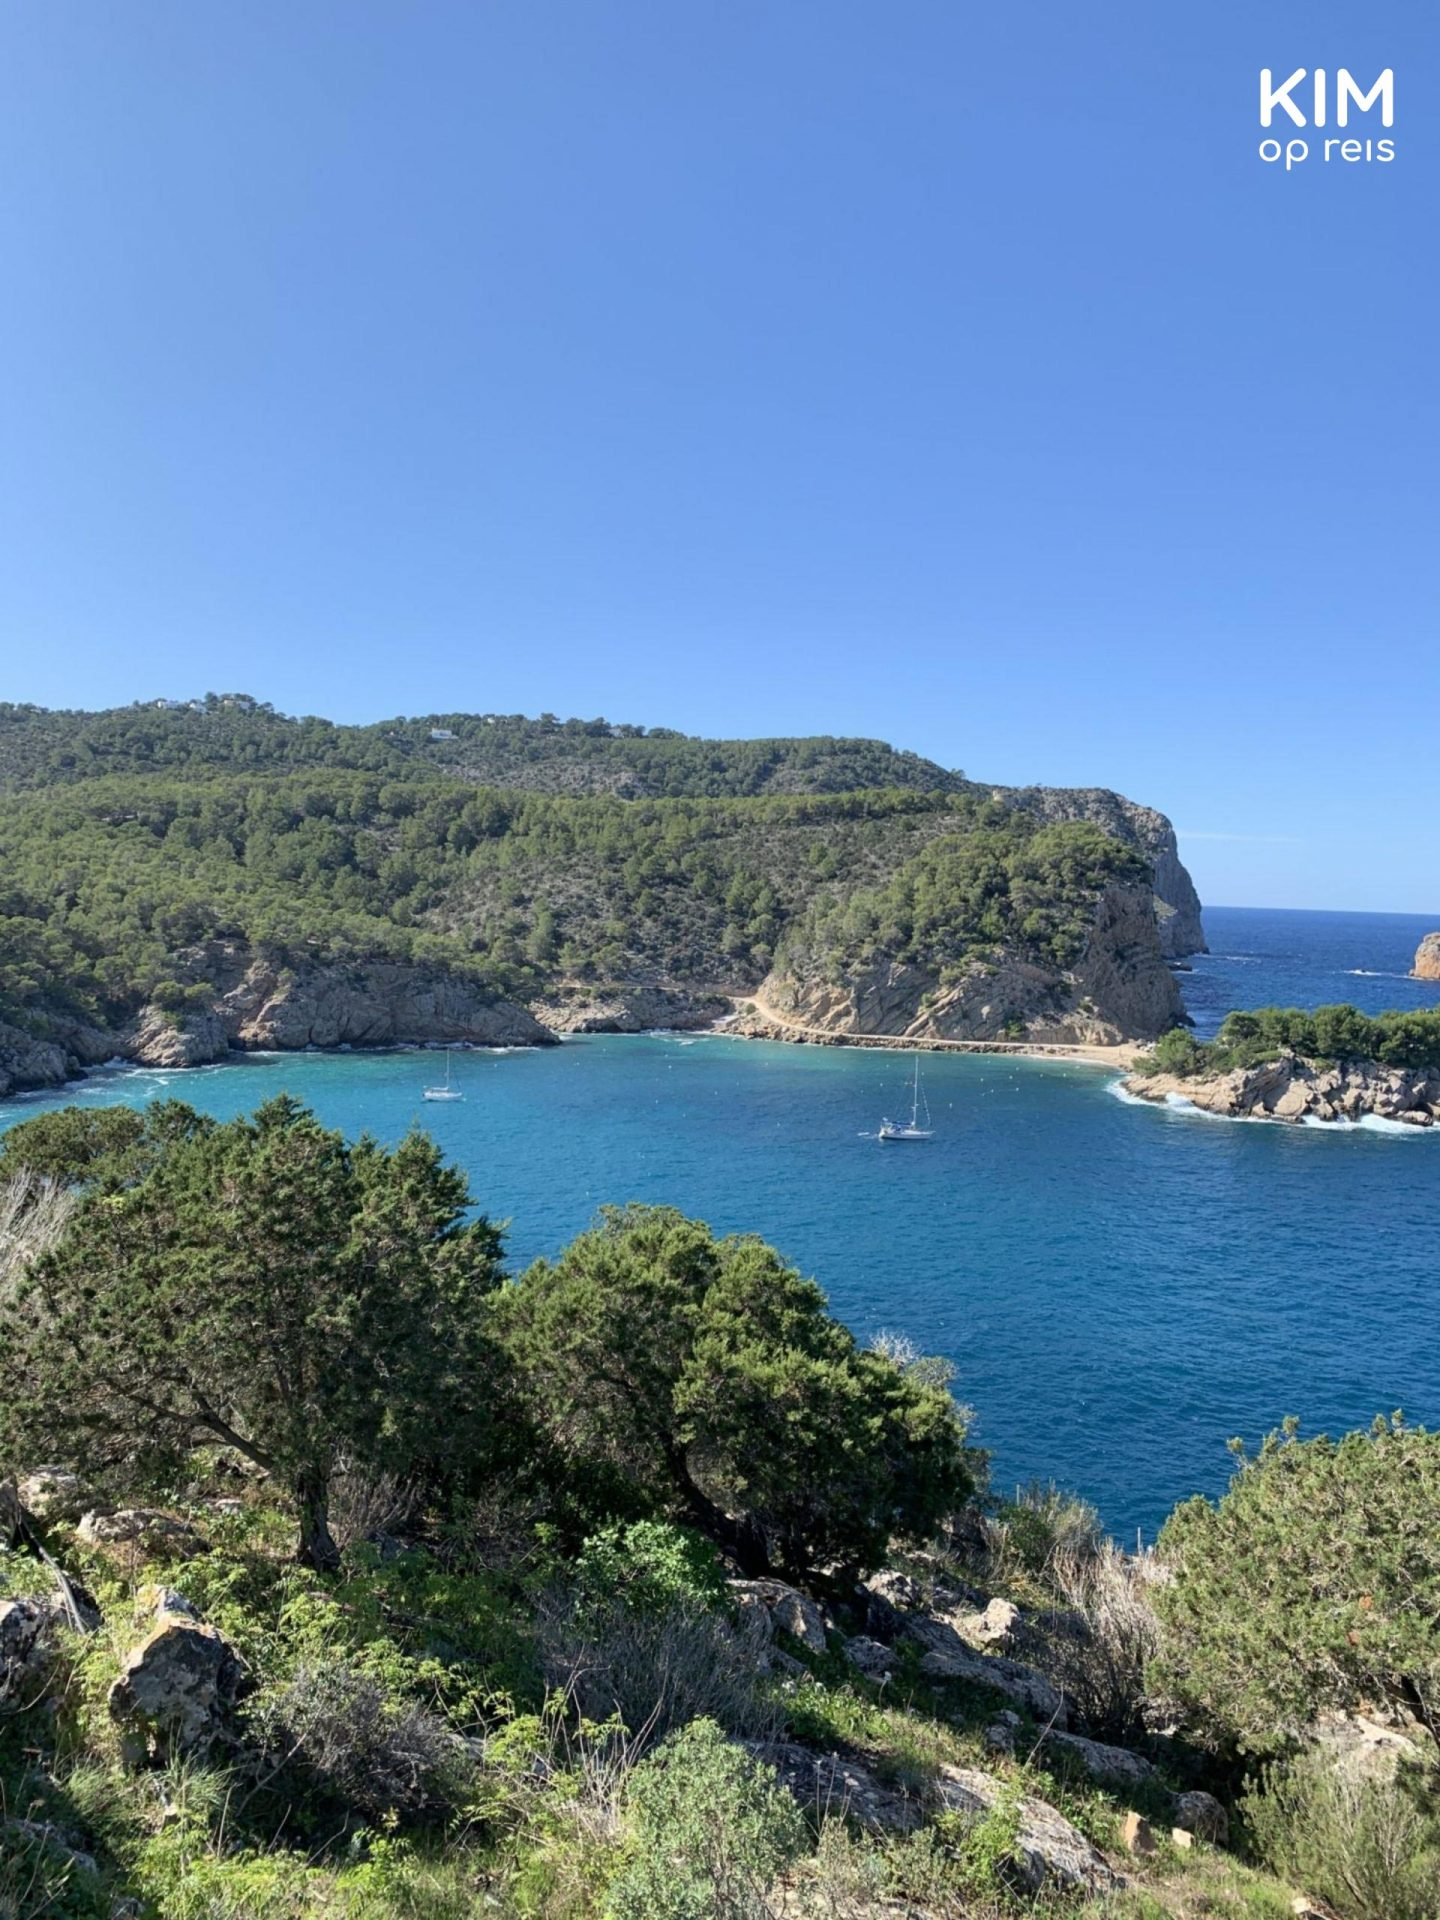 View Cova de Can Marca - bay with dense rocks and a sailboat in the water